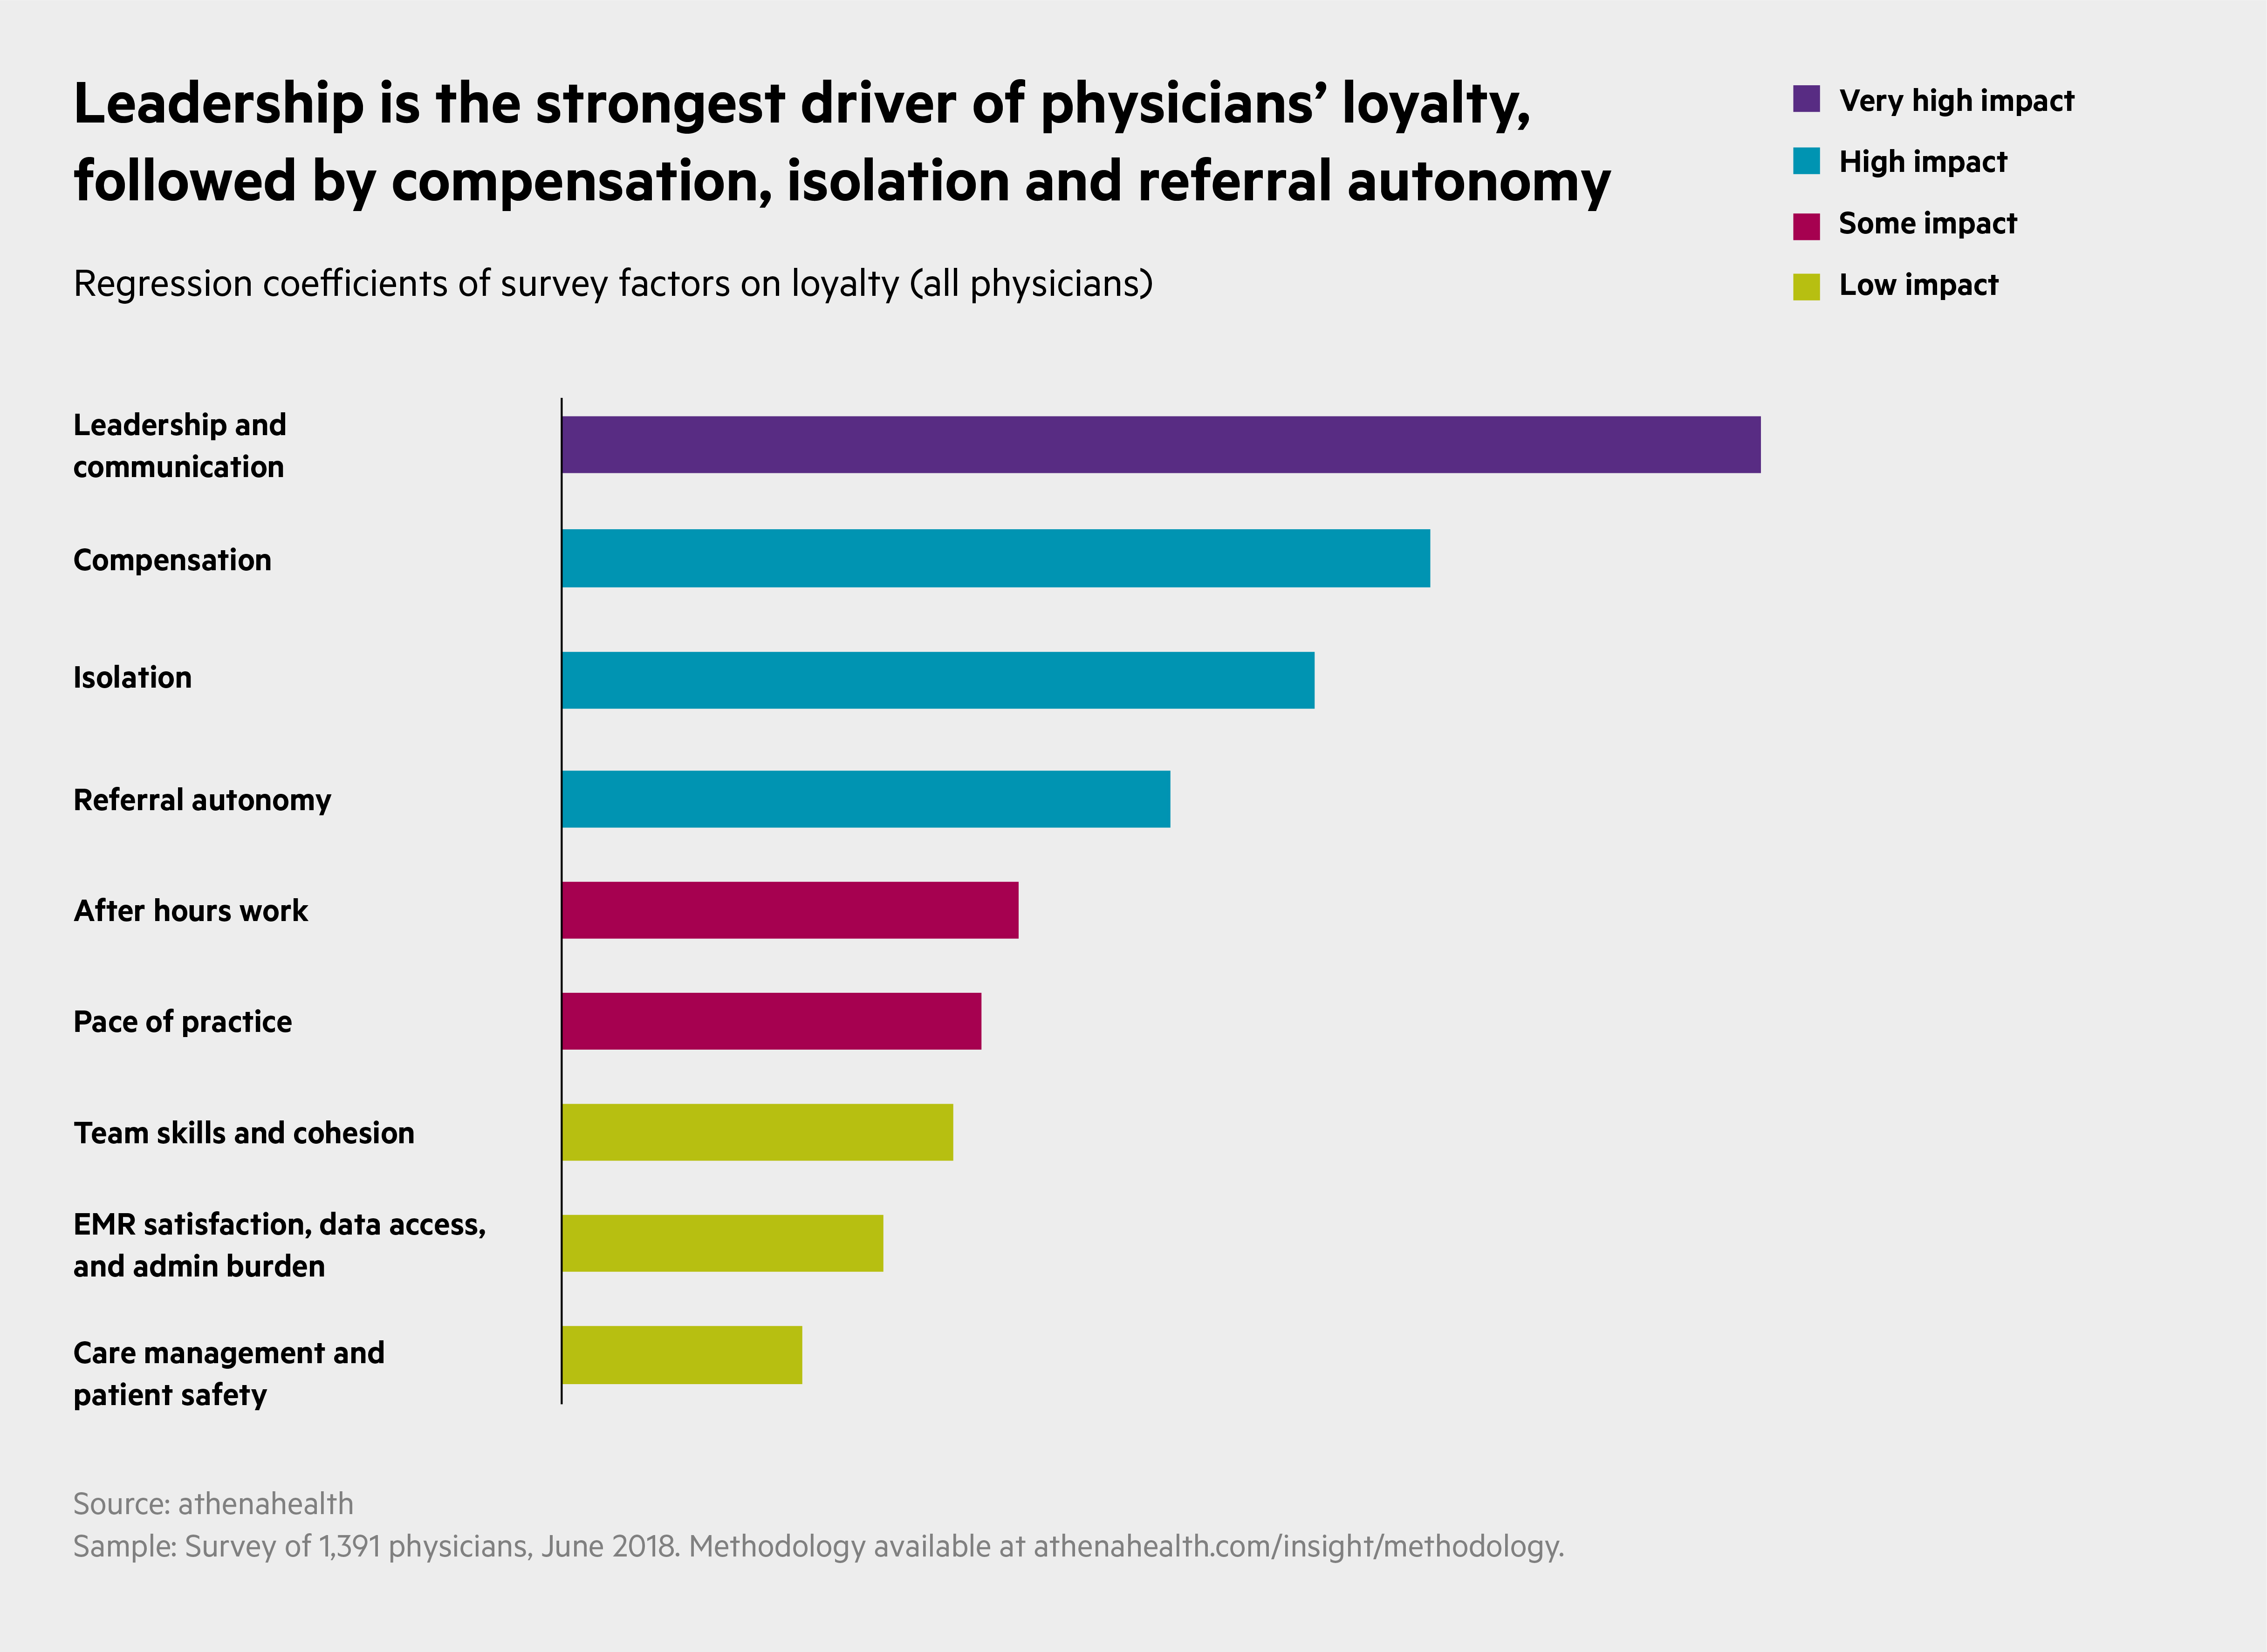 Leadership is the strongest driver of physicians' loyalty, followed by compensation, isolation, and referral autonomy.